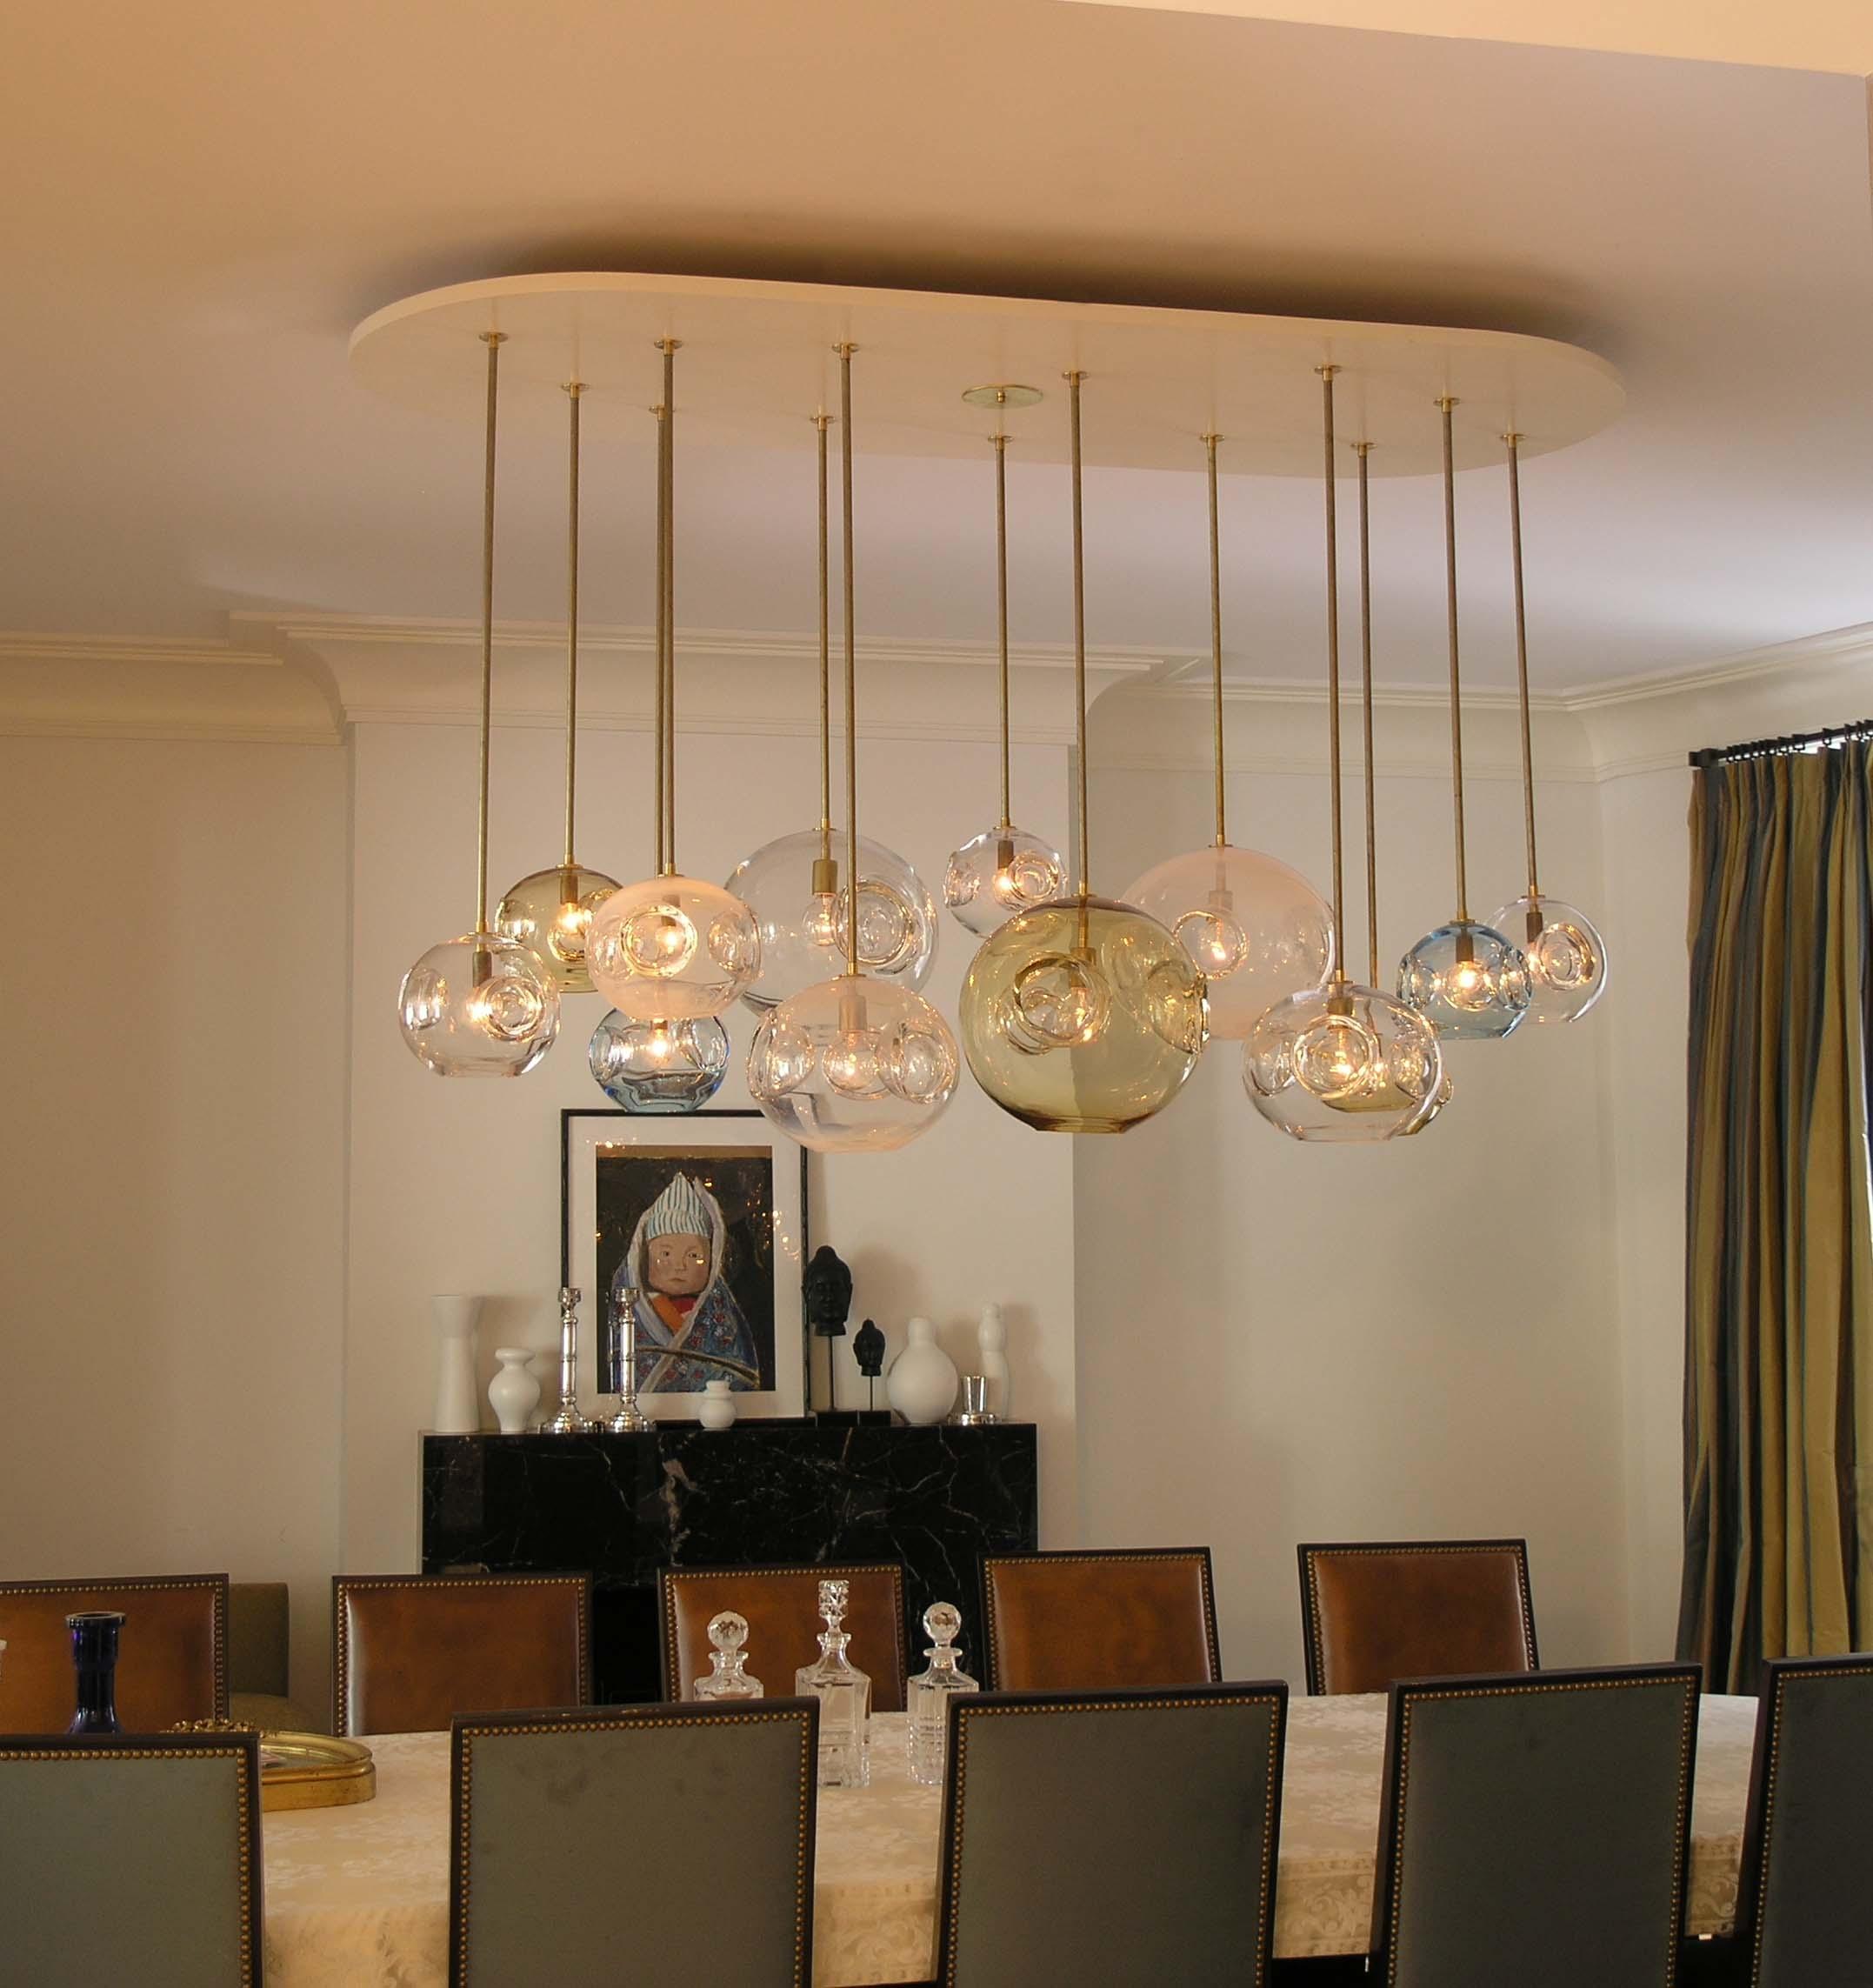 15 Photos Long Hanging Chandeliers